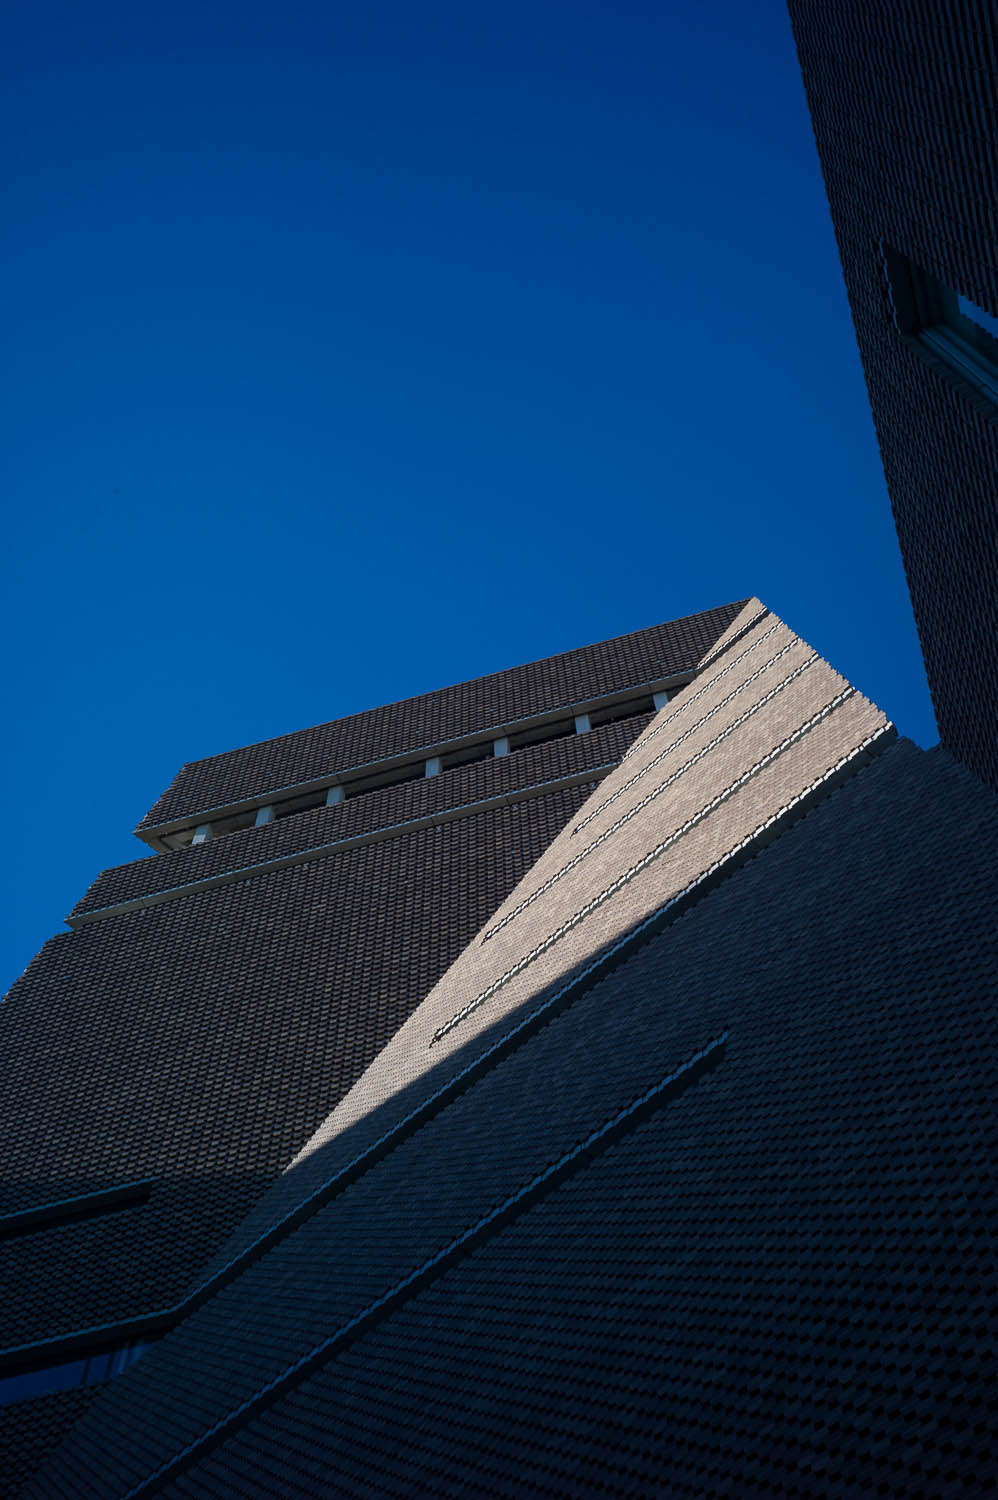 A triangle of sunlight fills a creased building at the Tate Modern museum